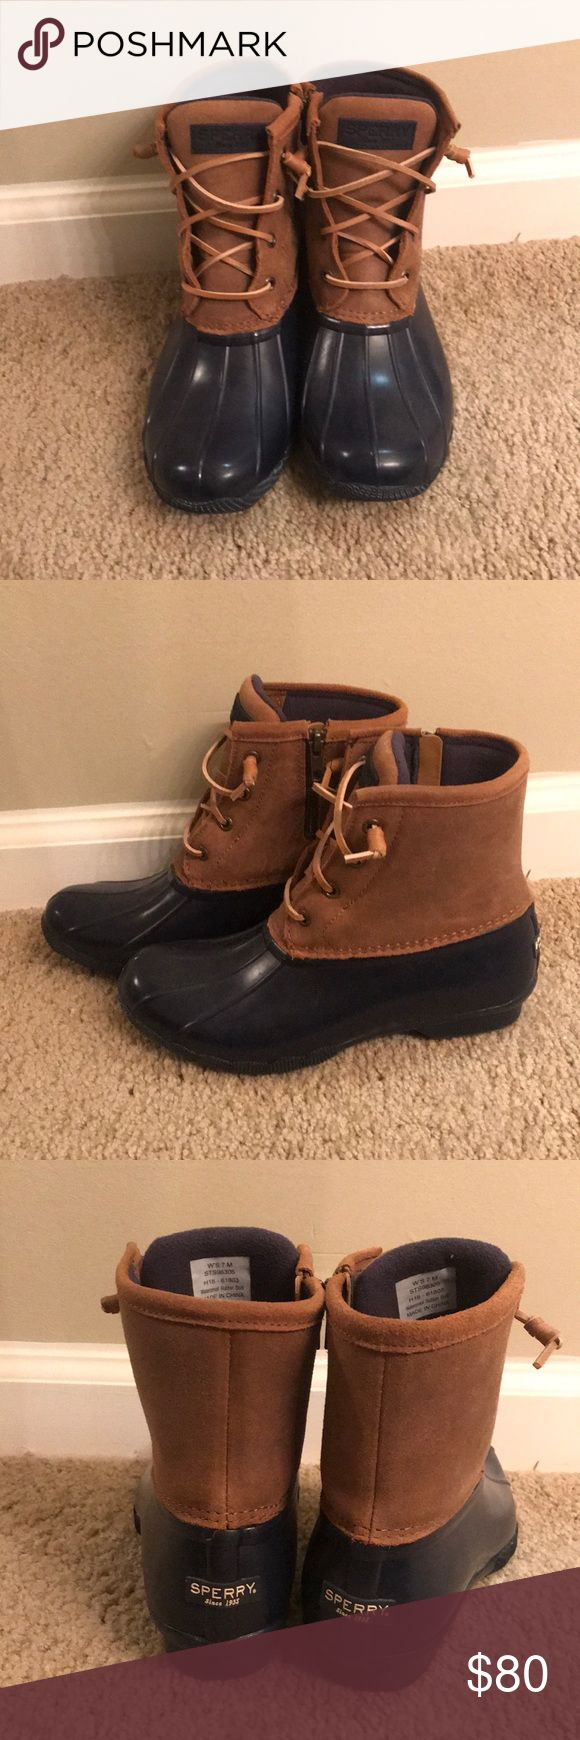 Brand New Never Worn Sperry Duck Boots Bean Boots women's size 7 (can fit 7-8) never worn! brand new! navy/tan sooo comfy!! (i have the black pair i wear 24/7) waterproof! i got these boots and got the wrong size but couldn't return them! price negotiable! make me an offer with the offer button! vvv or add to a bundle for 15% OFF!!! Sperry Shoes Winter & Rain Boots